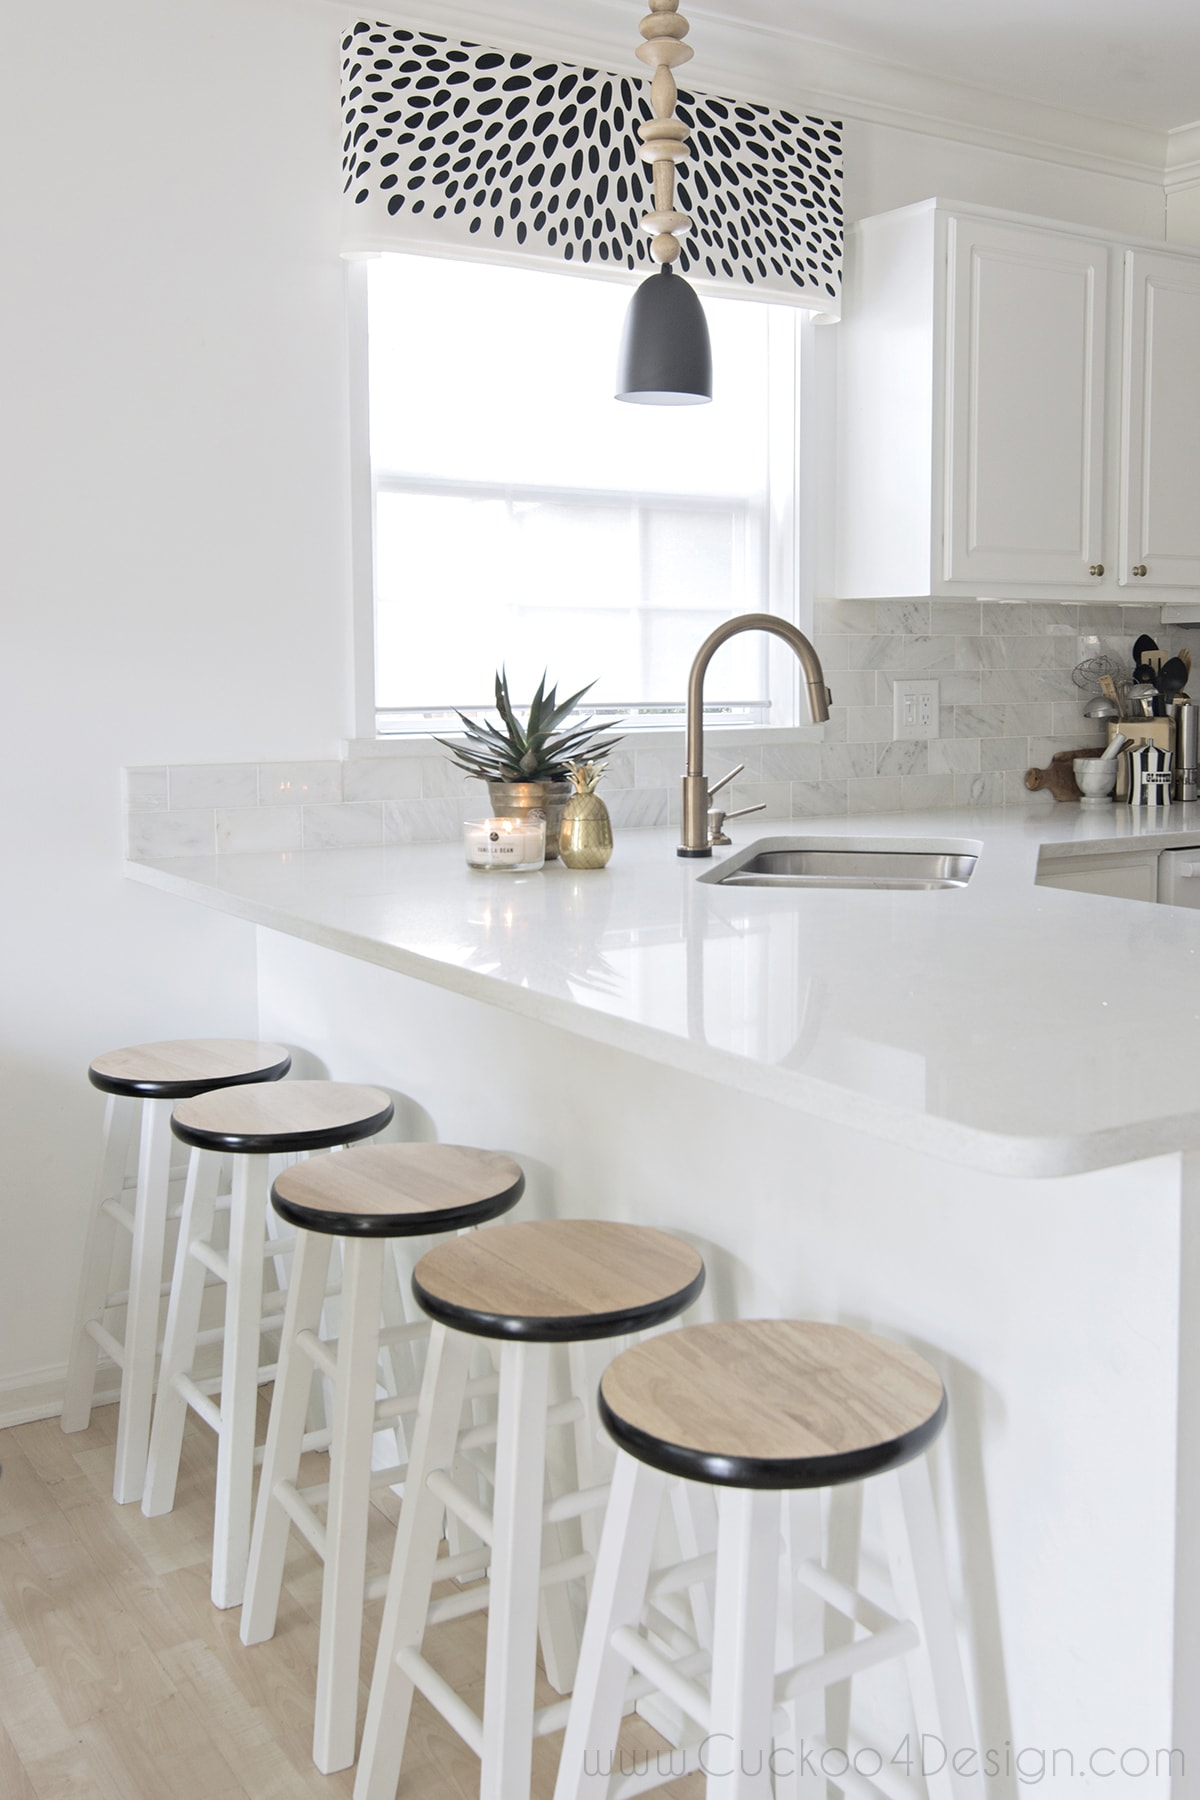 black and white kitchen accents